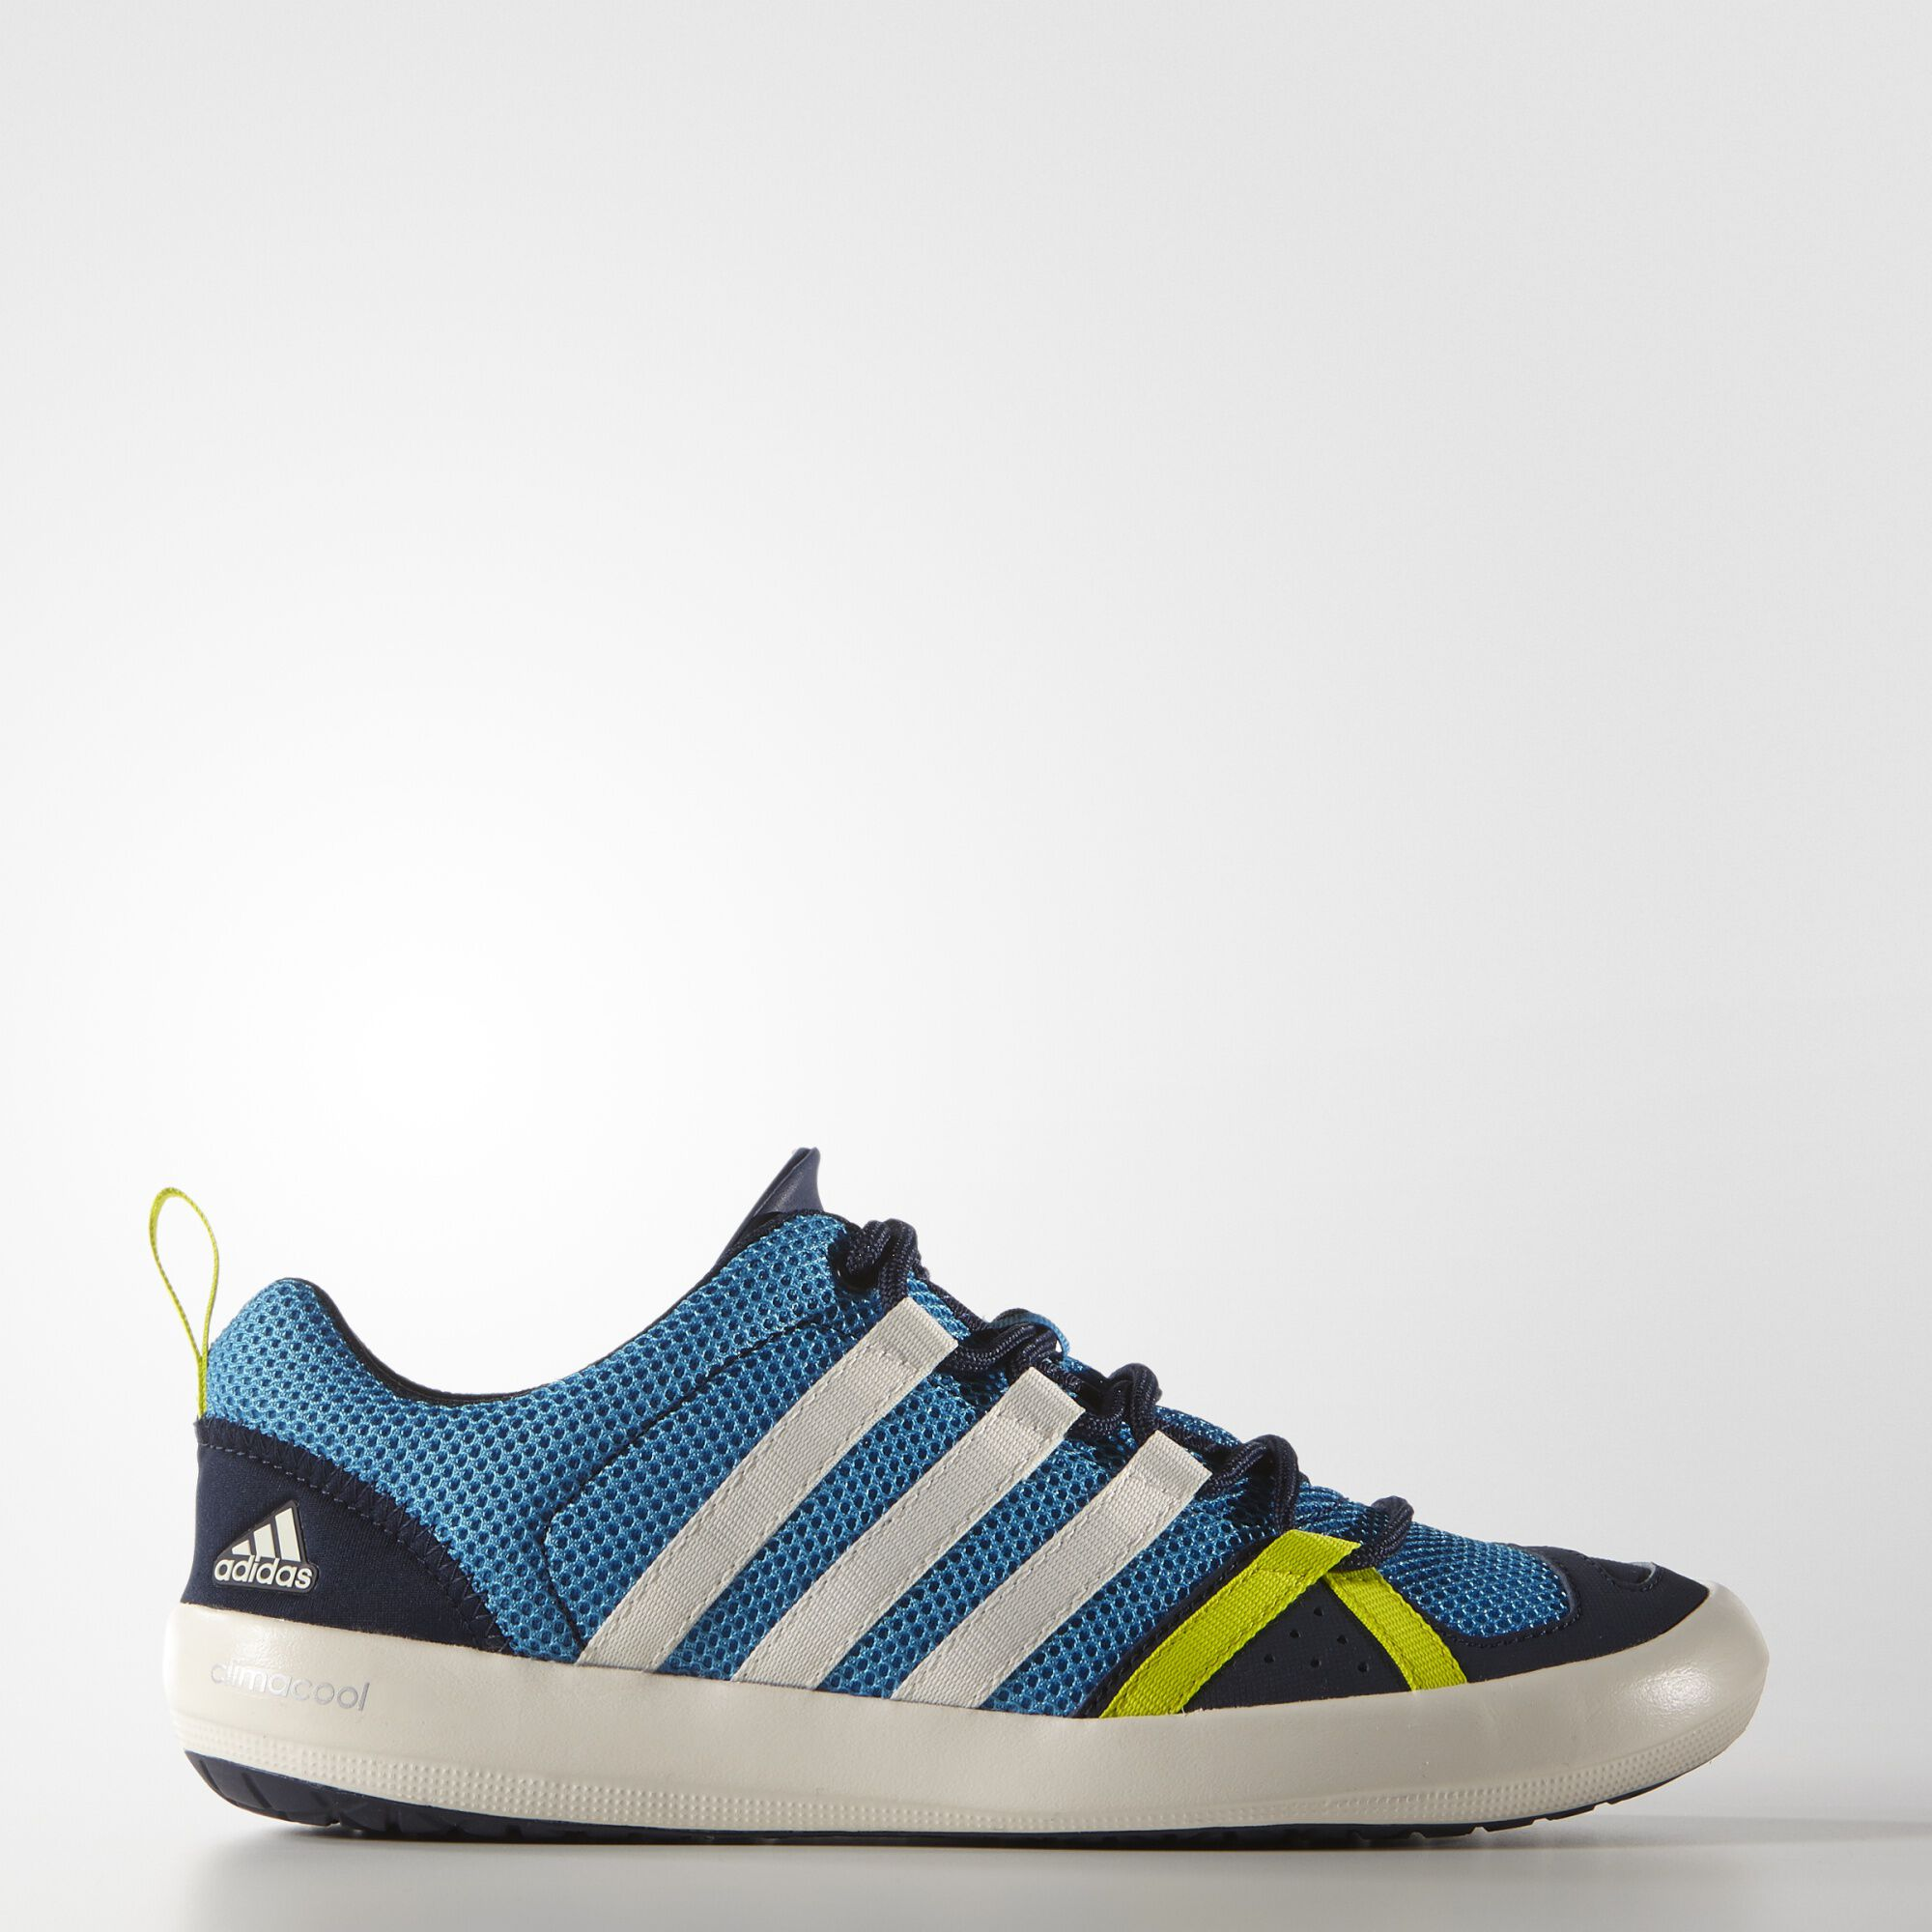 outlet adidas online shopping